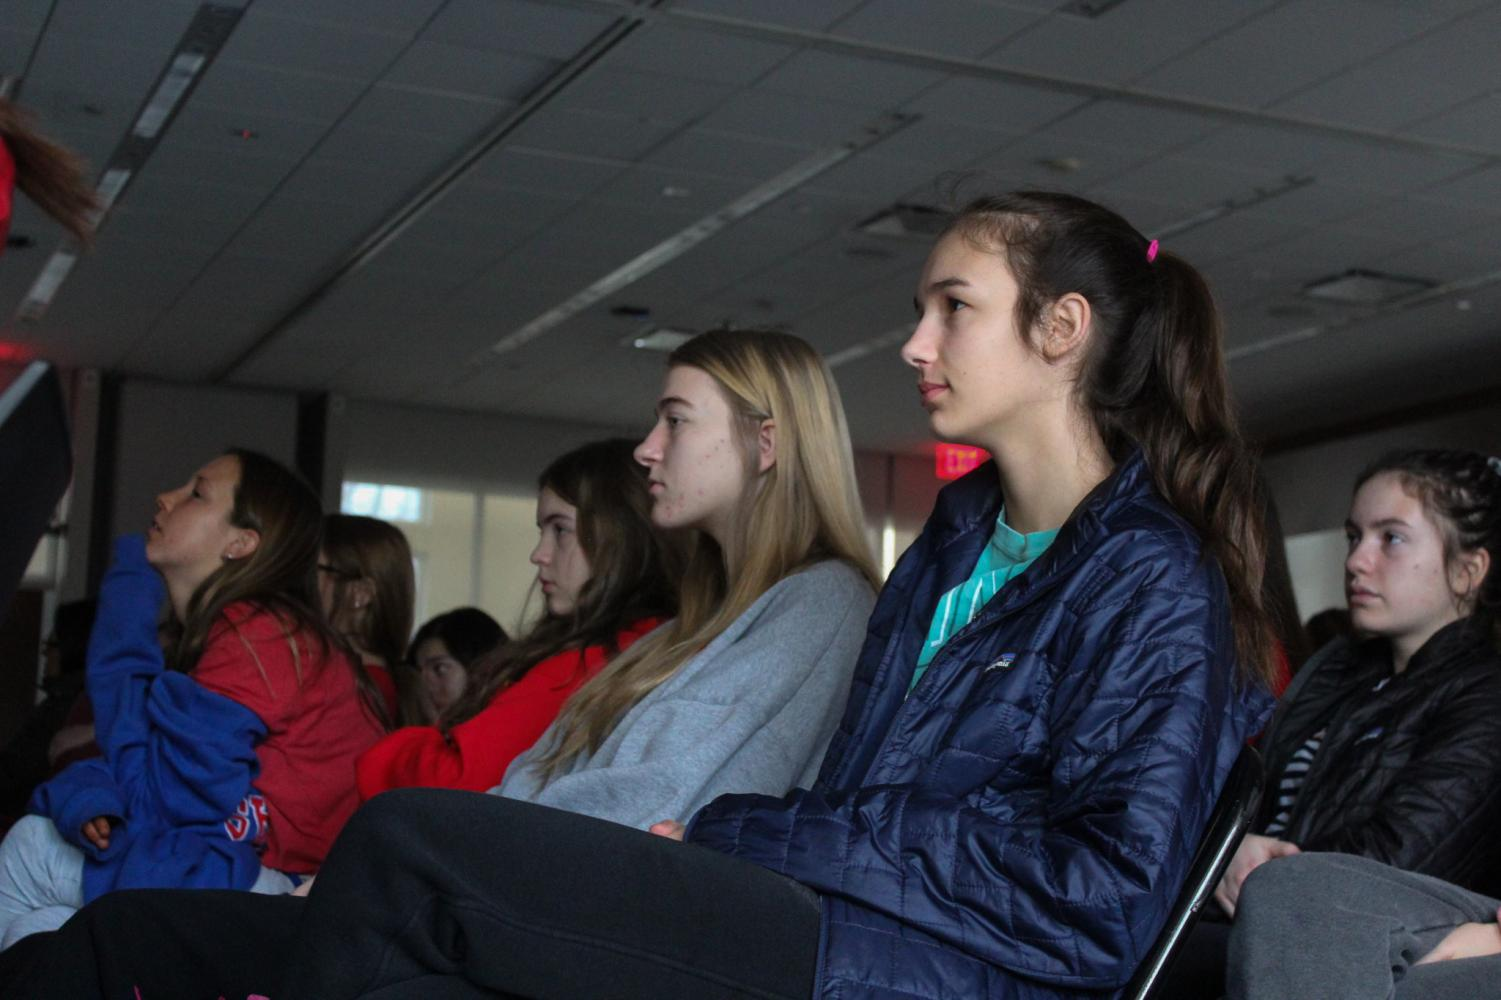 """Sophomores Rachel Pryor, on the left, and Jessie Borchert watch the movie """"True Justice: Bryan Stevenson's Fight for Equality""""  in Windmoor, Jan. 31. This is the fourth year STA has shown a movie to the entire school. photo by Ella Norton"""